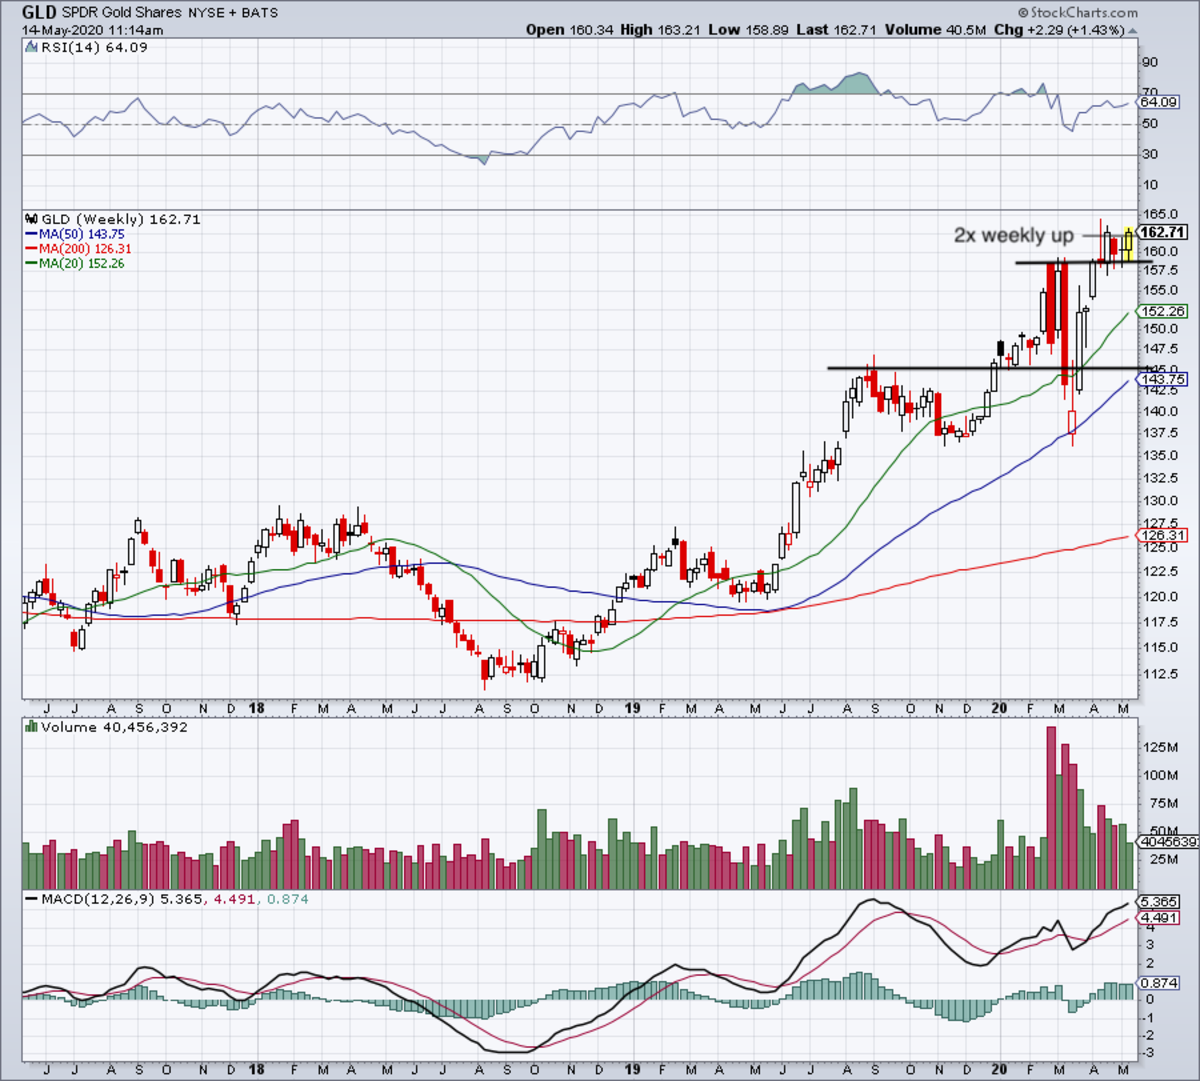 Weekly chart of the GLD ETF.